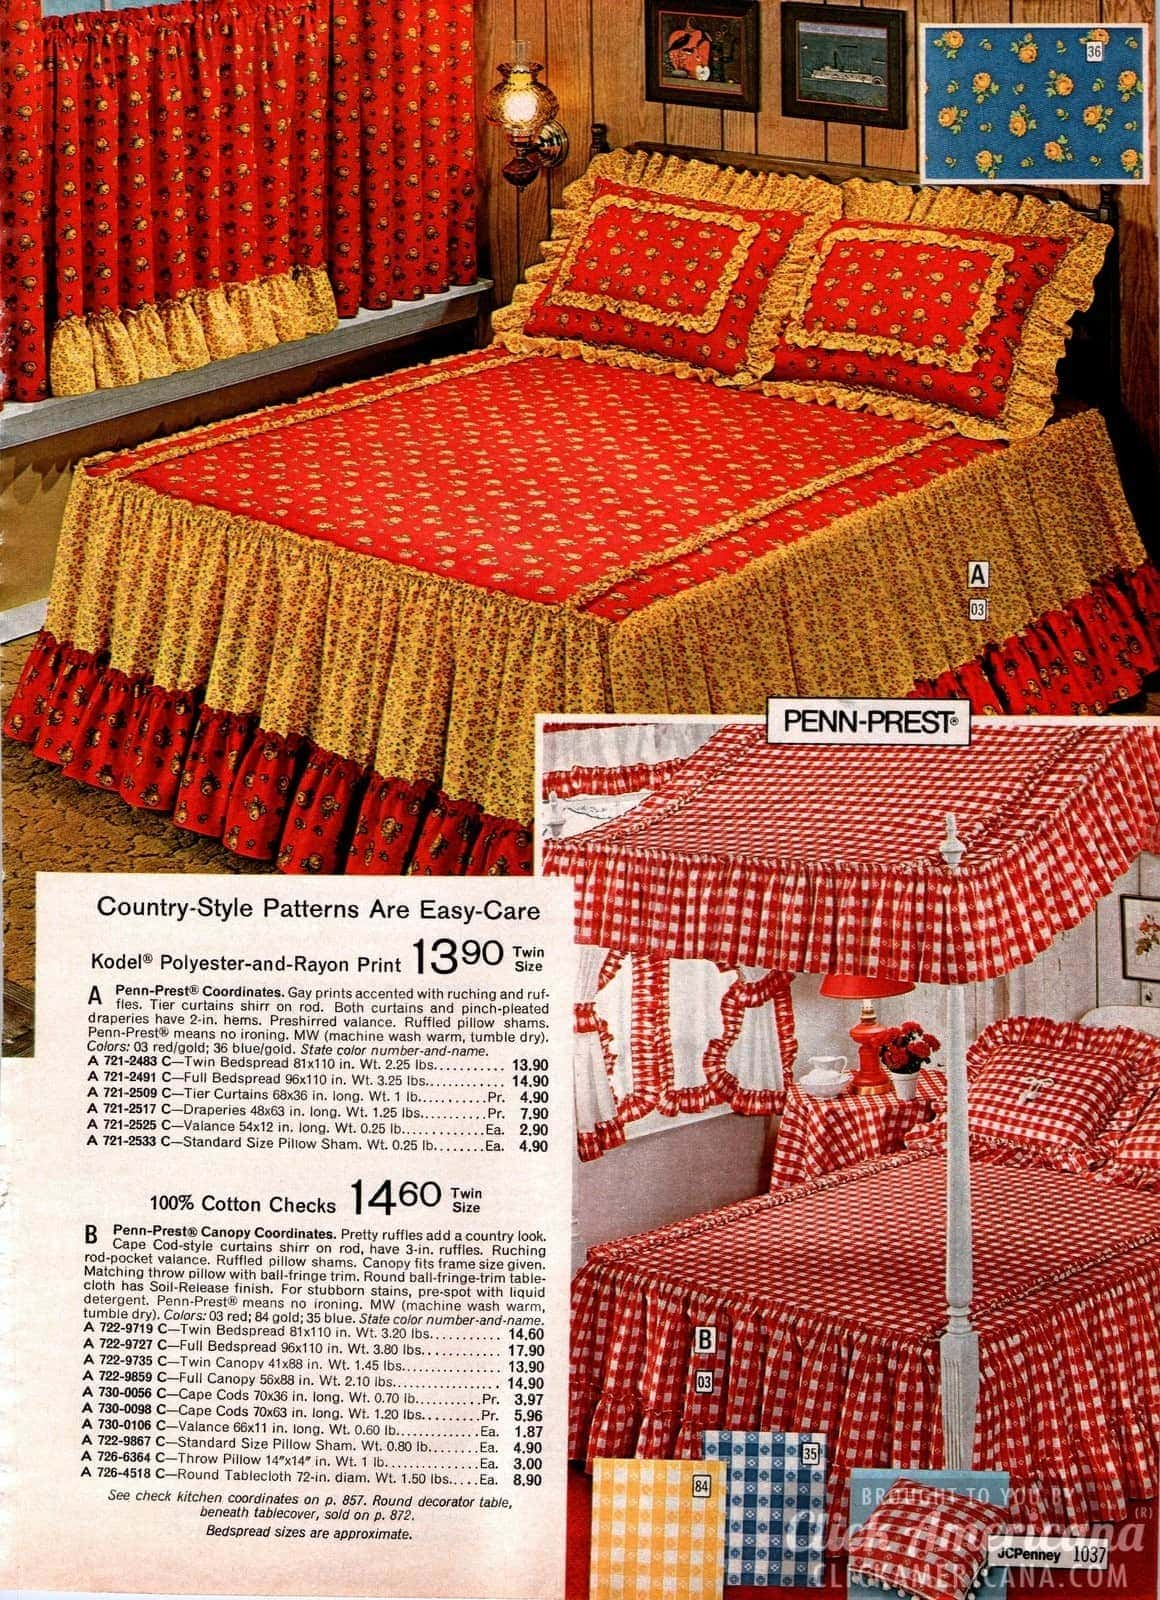 Country-style patterns and cotton checks for canopy bed